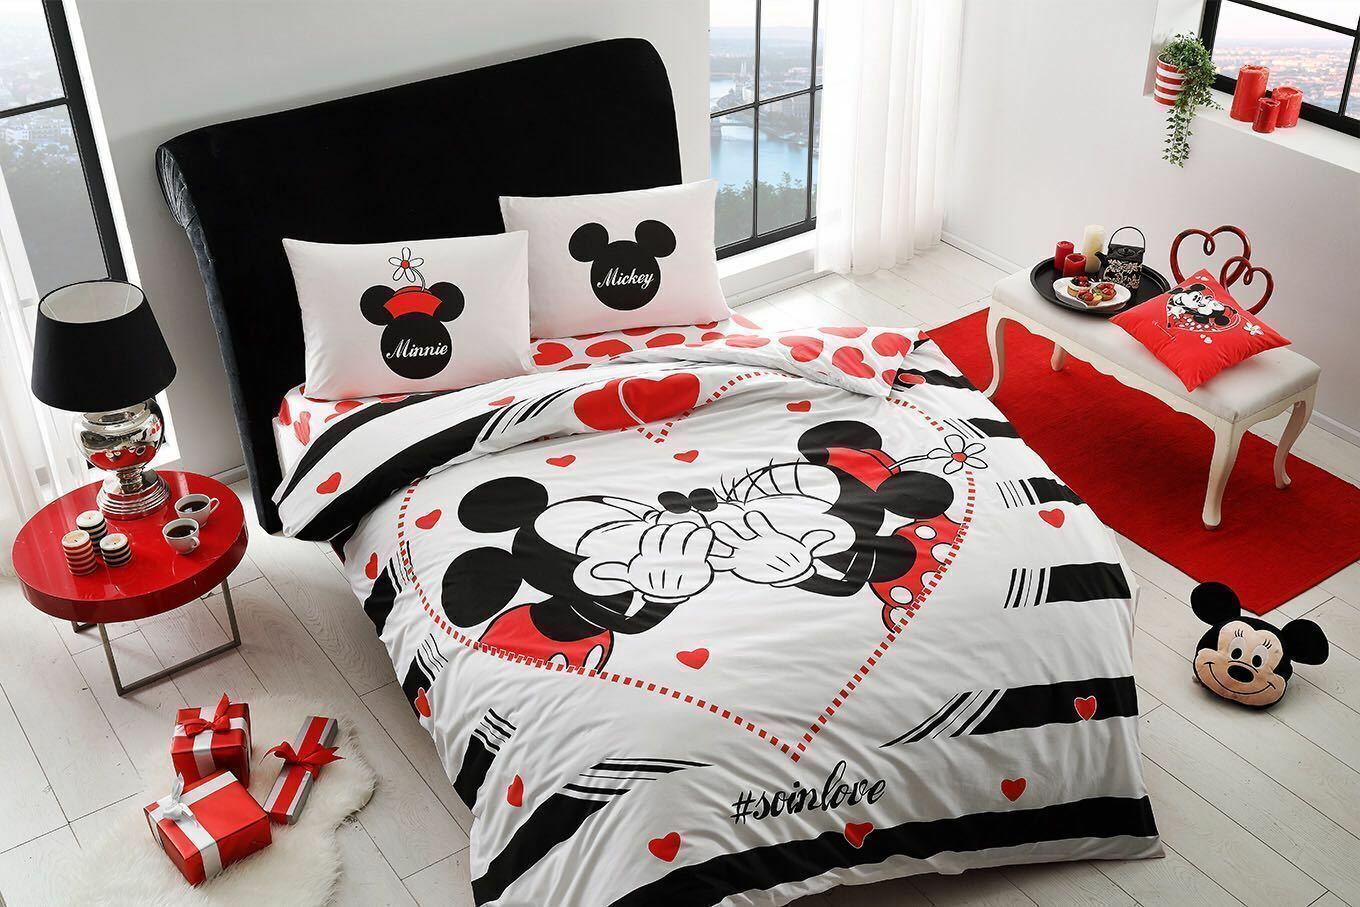 double queen size bedding set duvet quilt cover set disney m